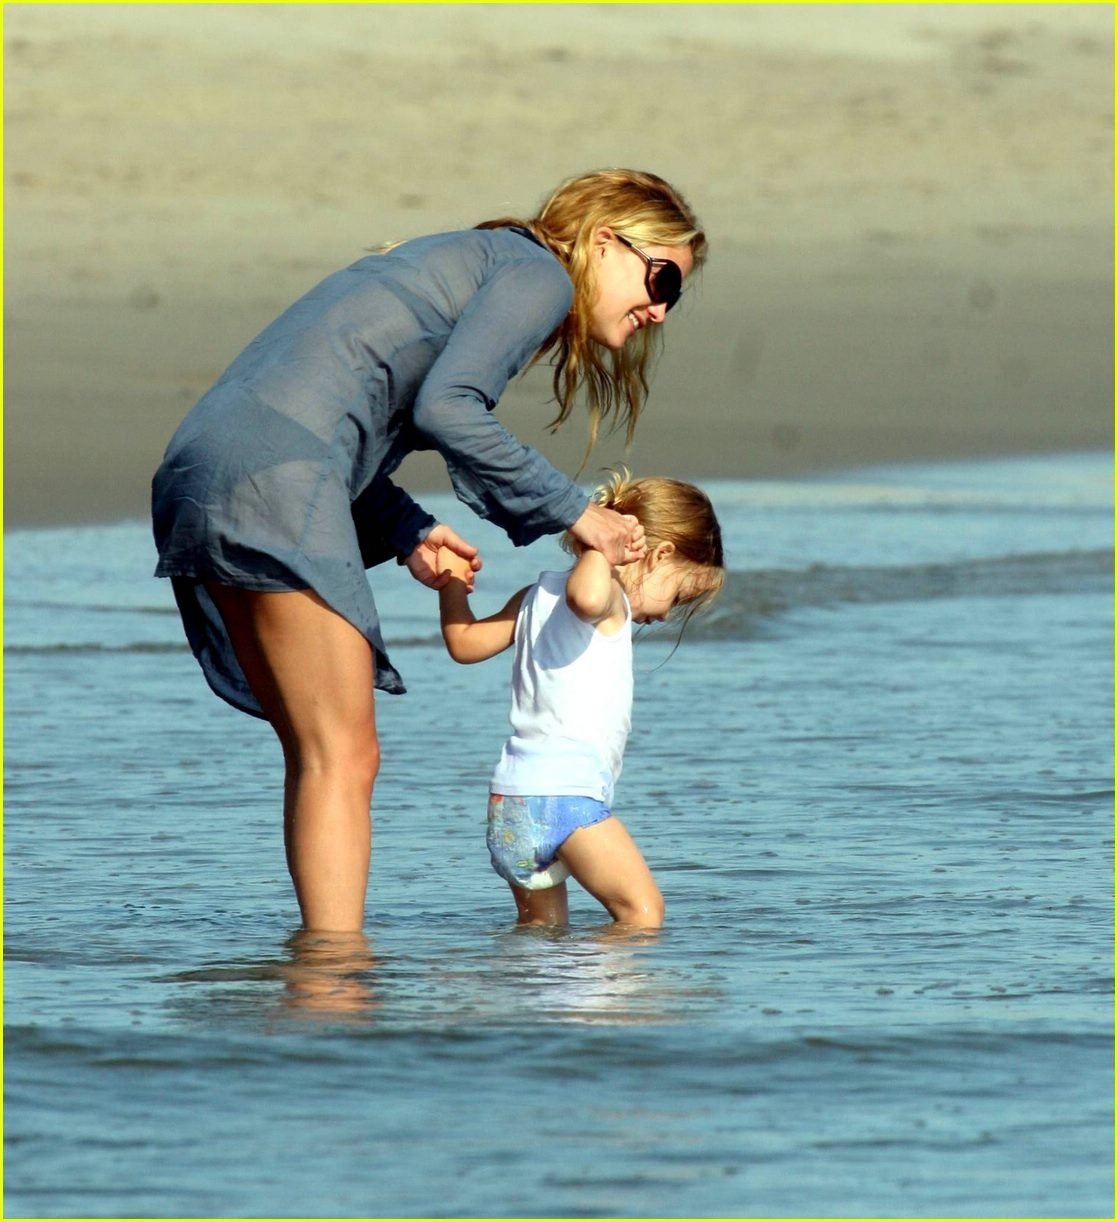 Full Sized Photo of kate hudson beach 15 | Photo 394871 ... Kate Hudson